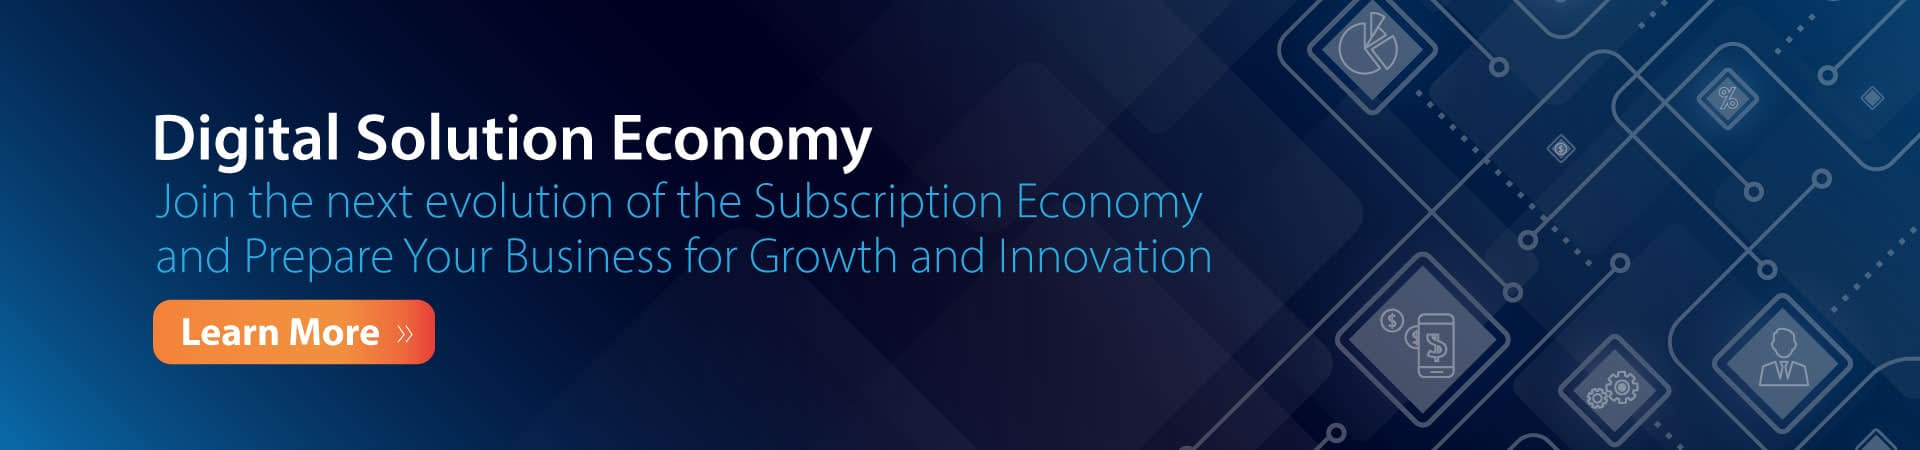 Digital Subscription Economy Solutions Banner